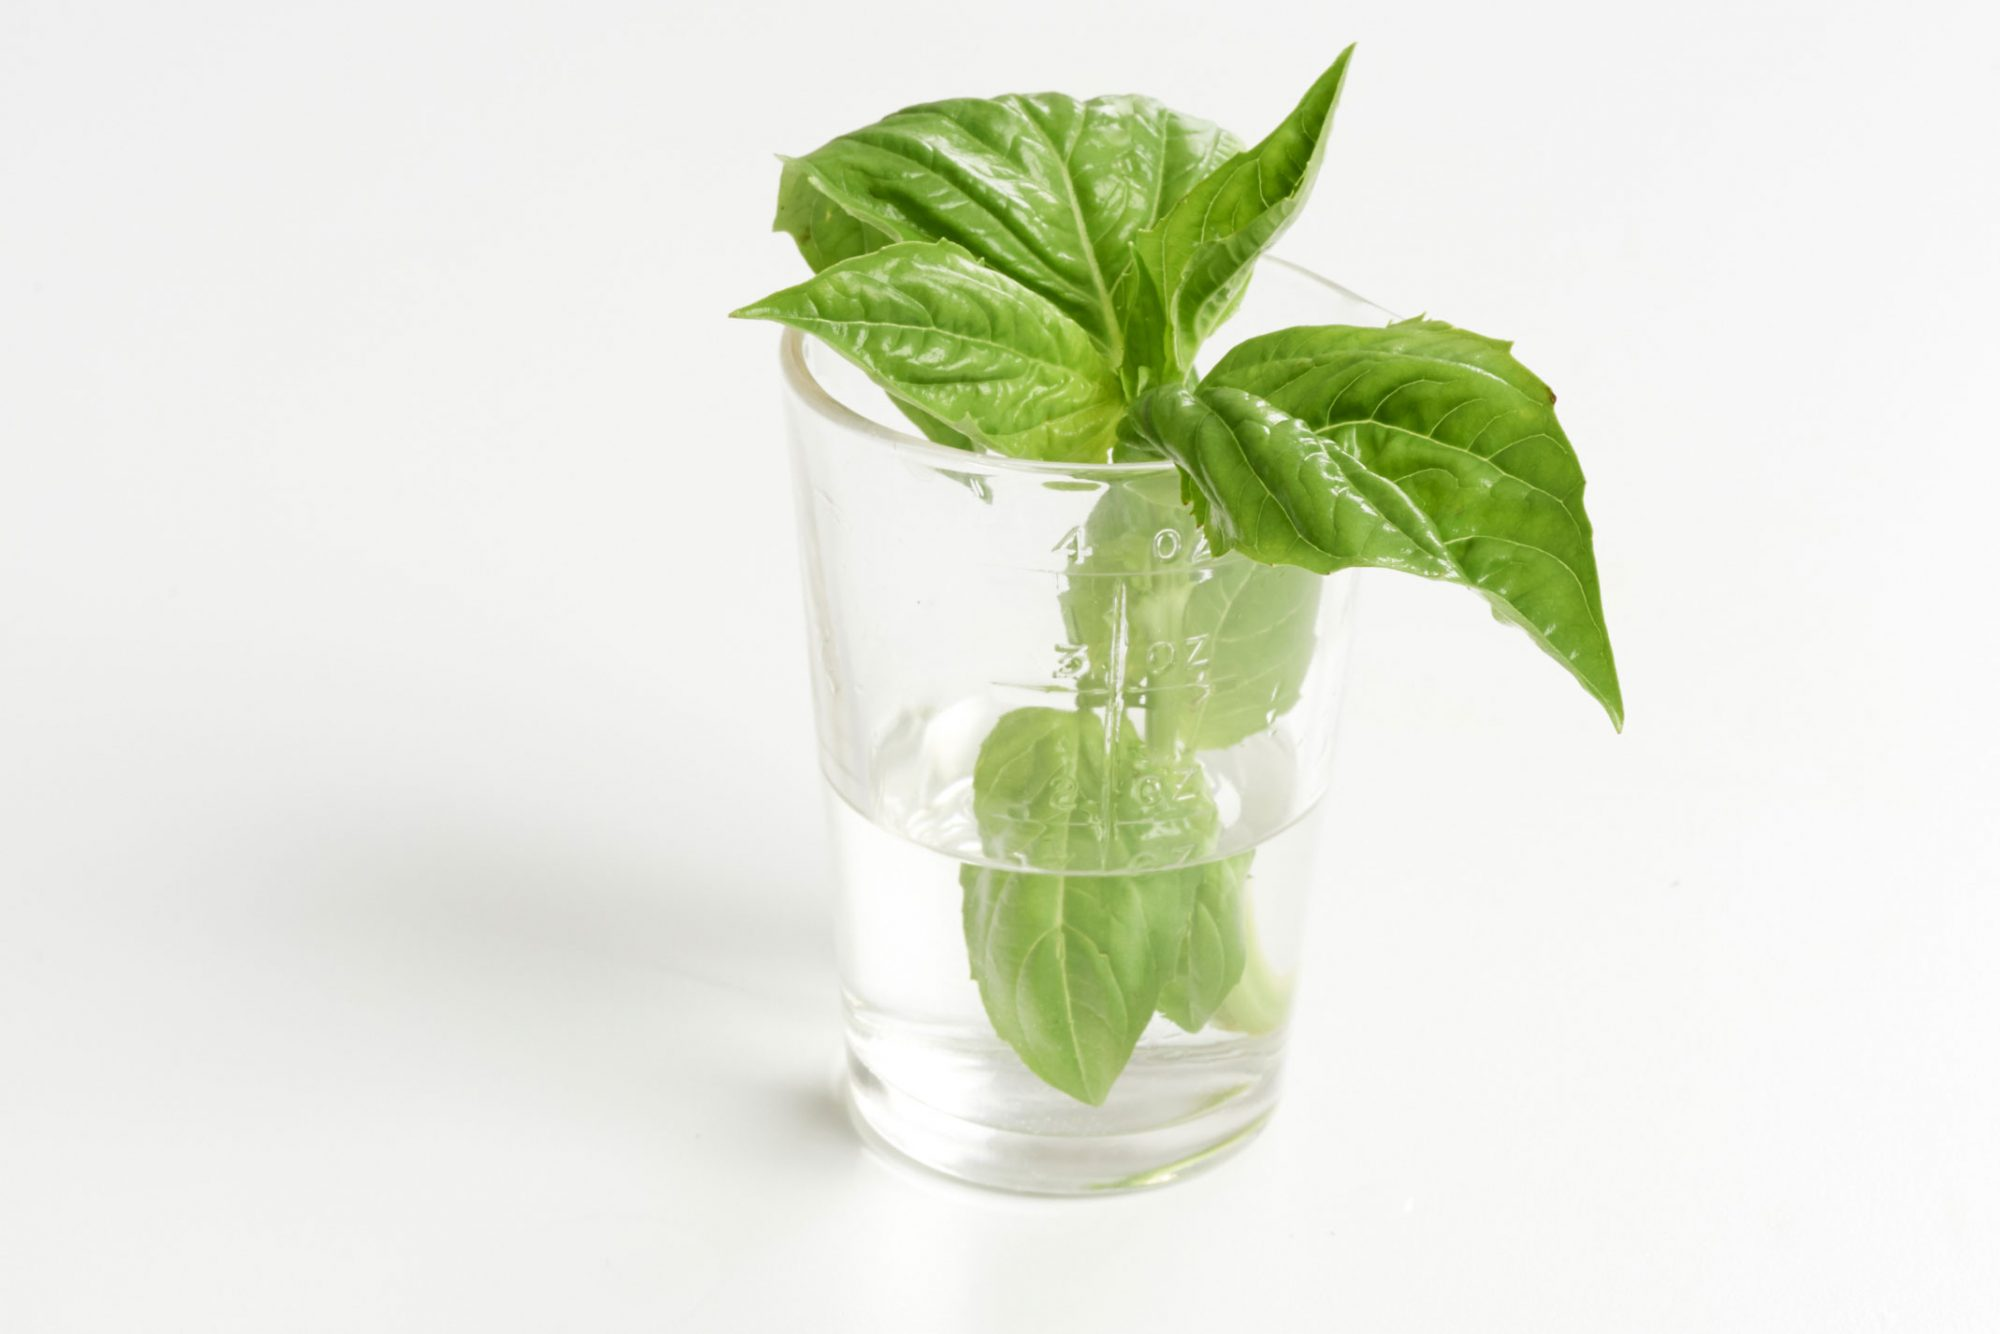 FRESH CUT BASIL IN GLASS CUP WITH WATER ON WHITE BACKGROUND